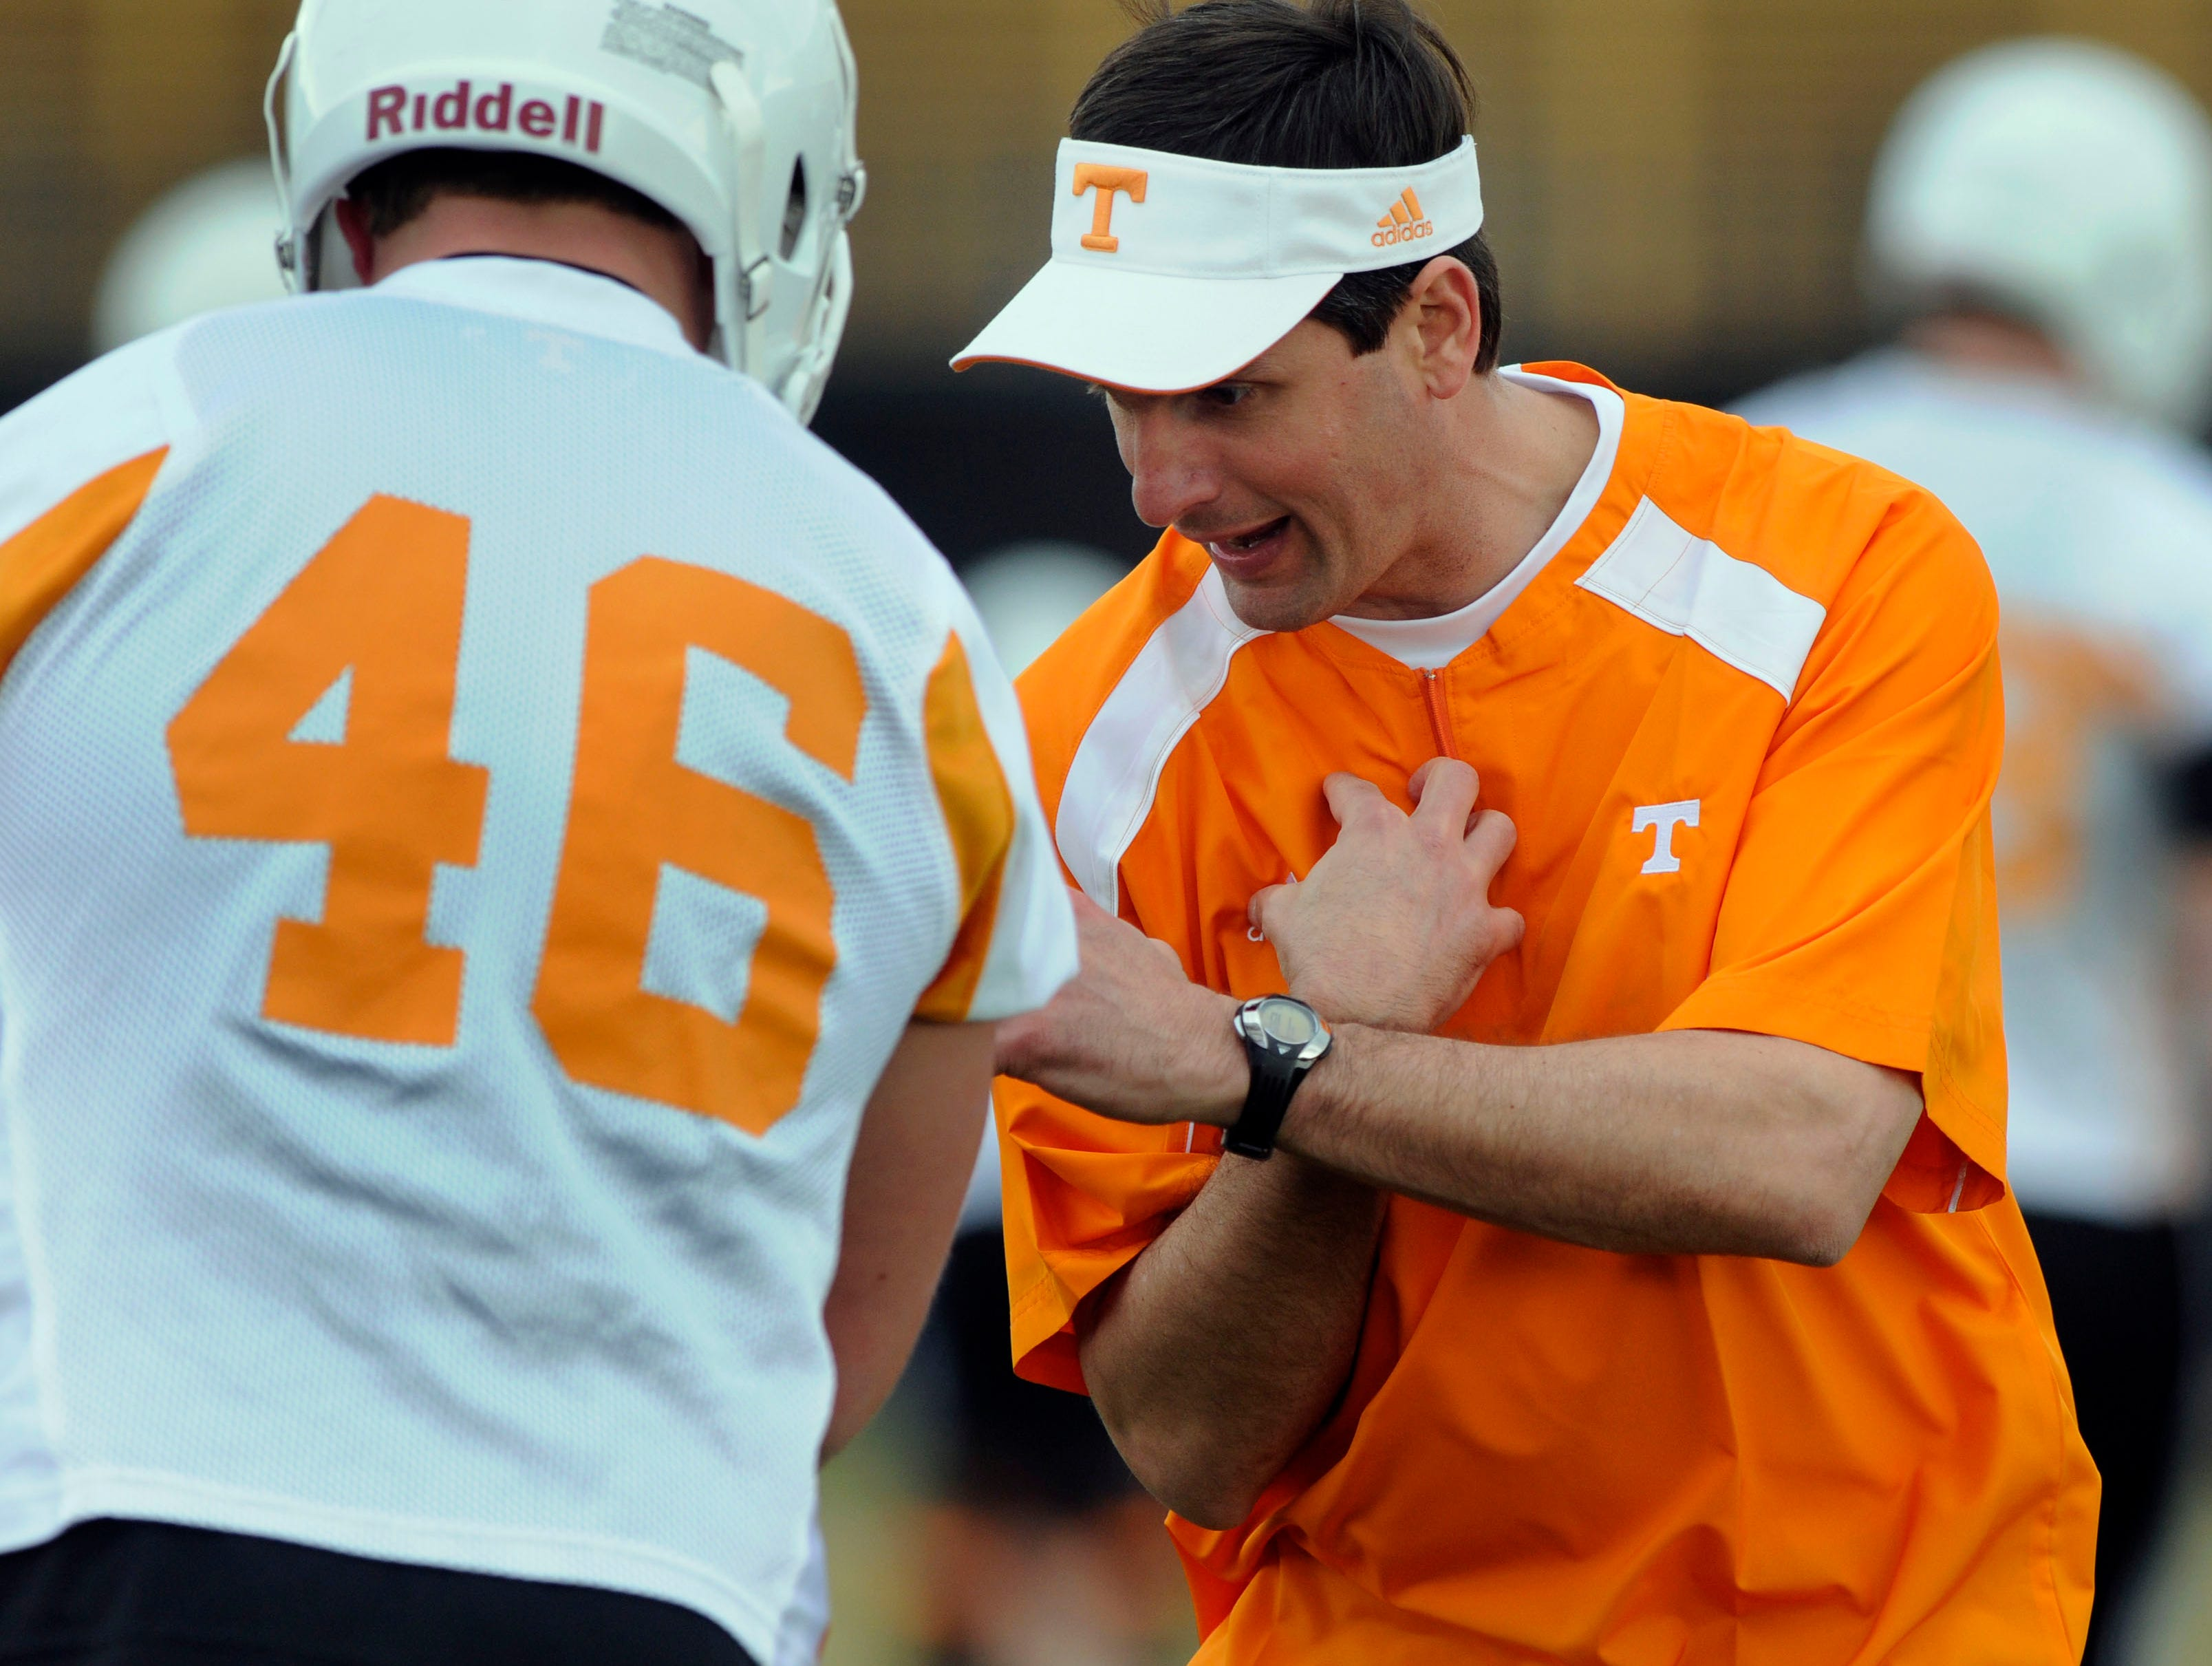 UT head coach Derek Dooley works with Channing Fugate during the first day of UT spring football practice Thursday, Mar. 18, 2010 at Haslam Field on campus.